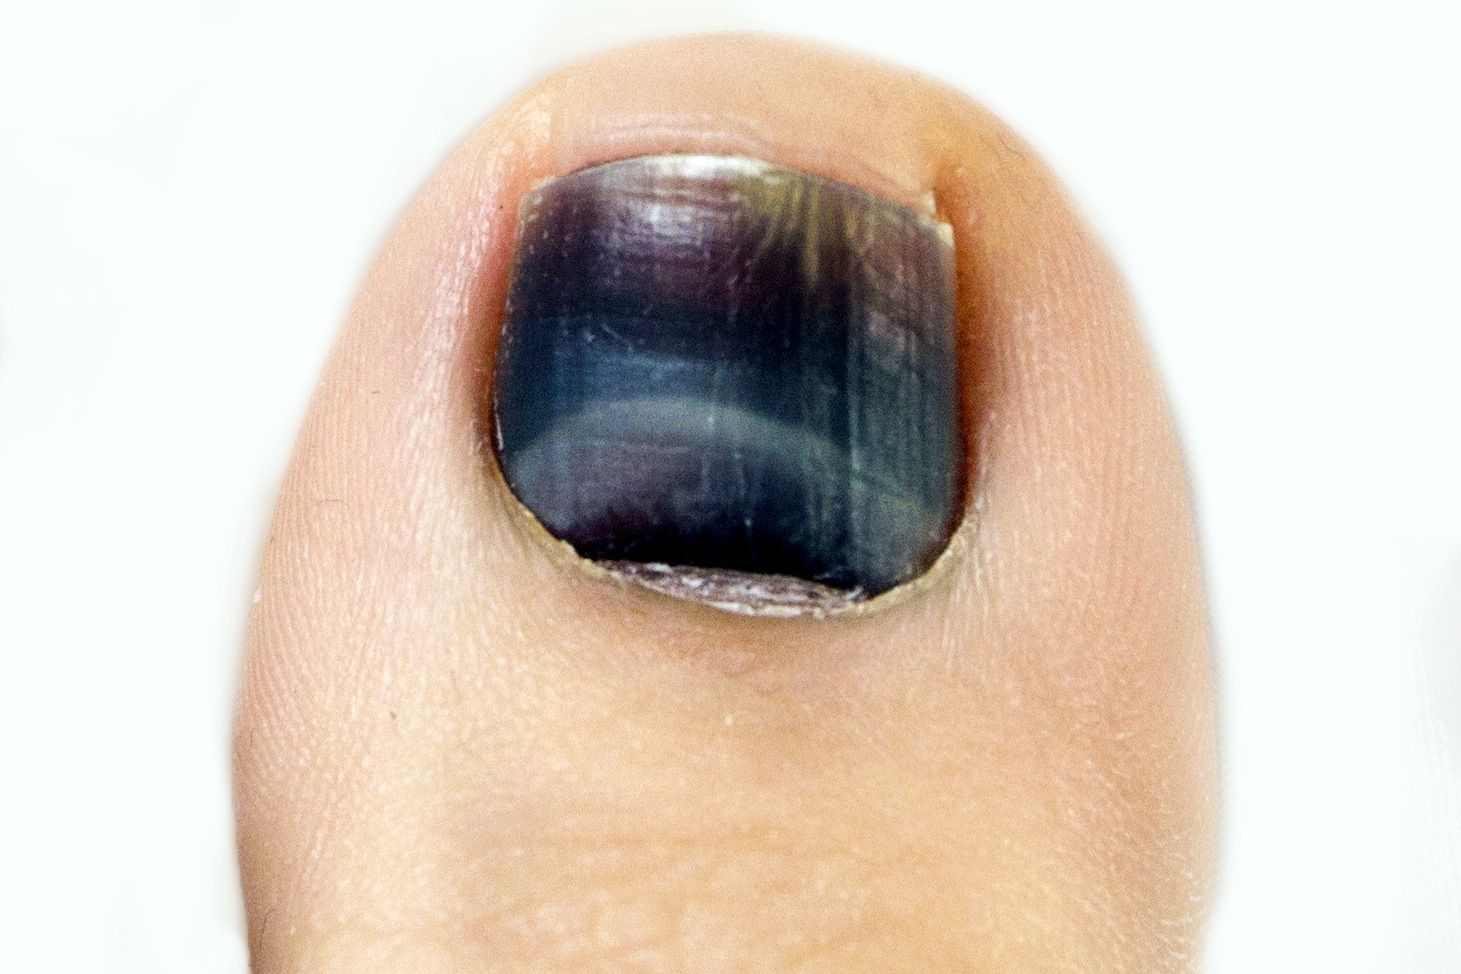 Toenails turning grey